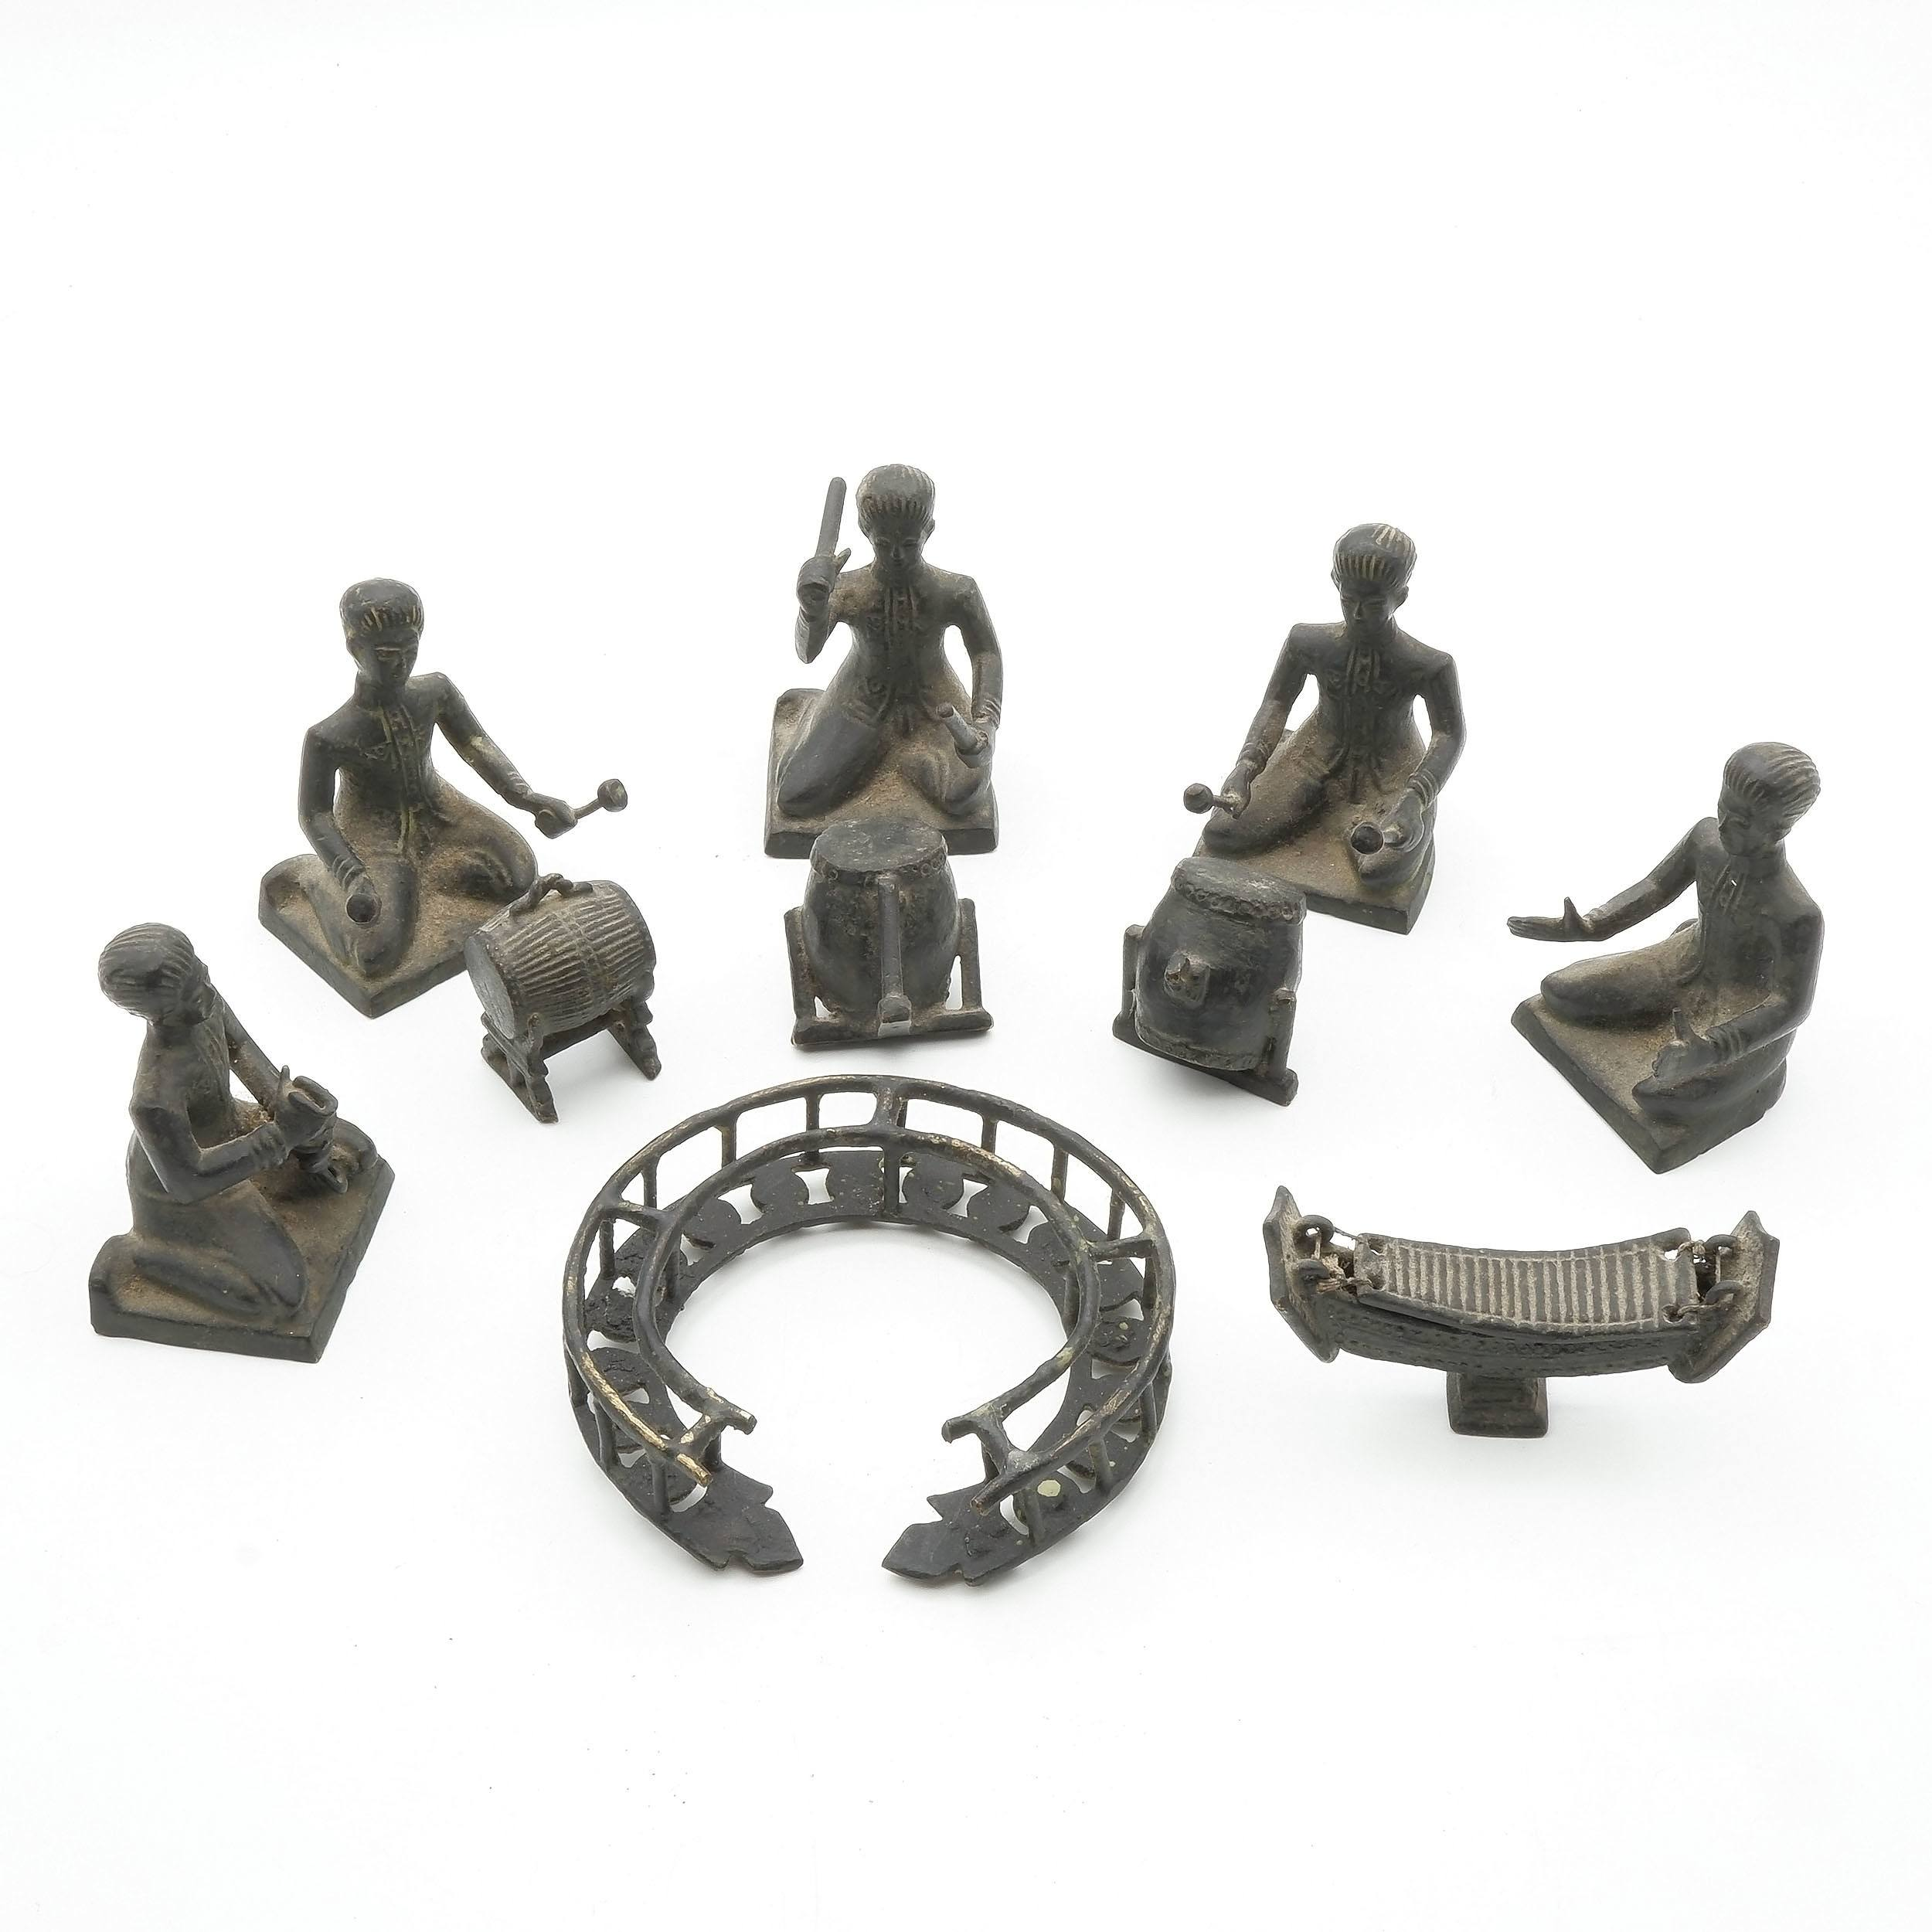 'Set of 5 Cambodian Bronze Musicians and Instruments Models '